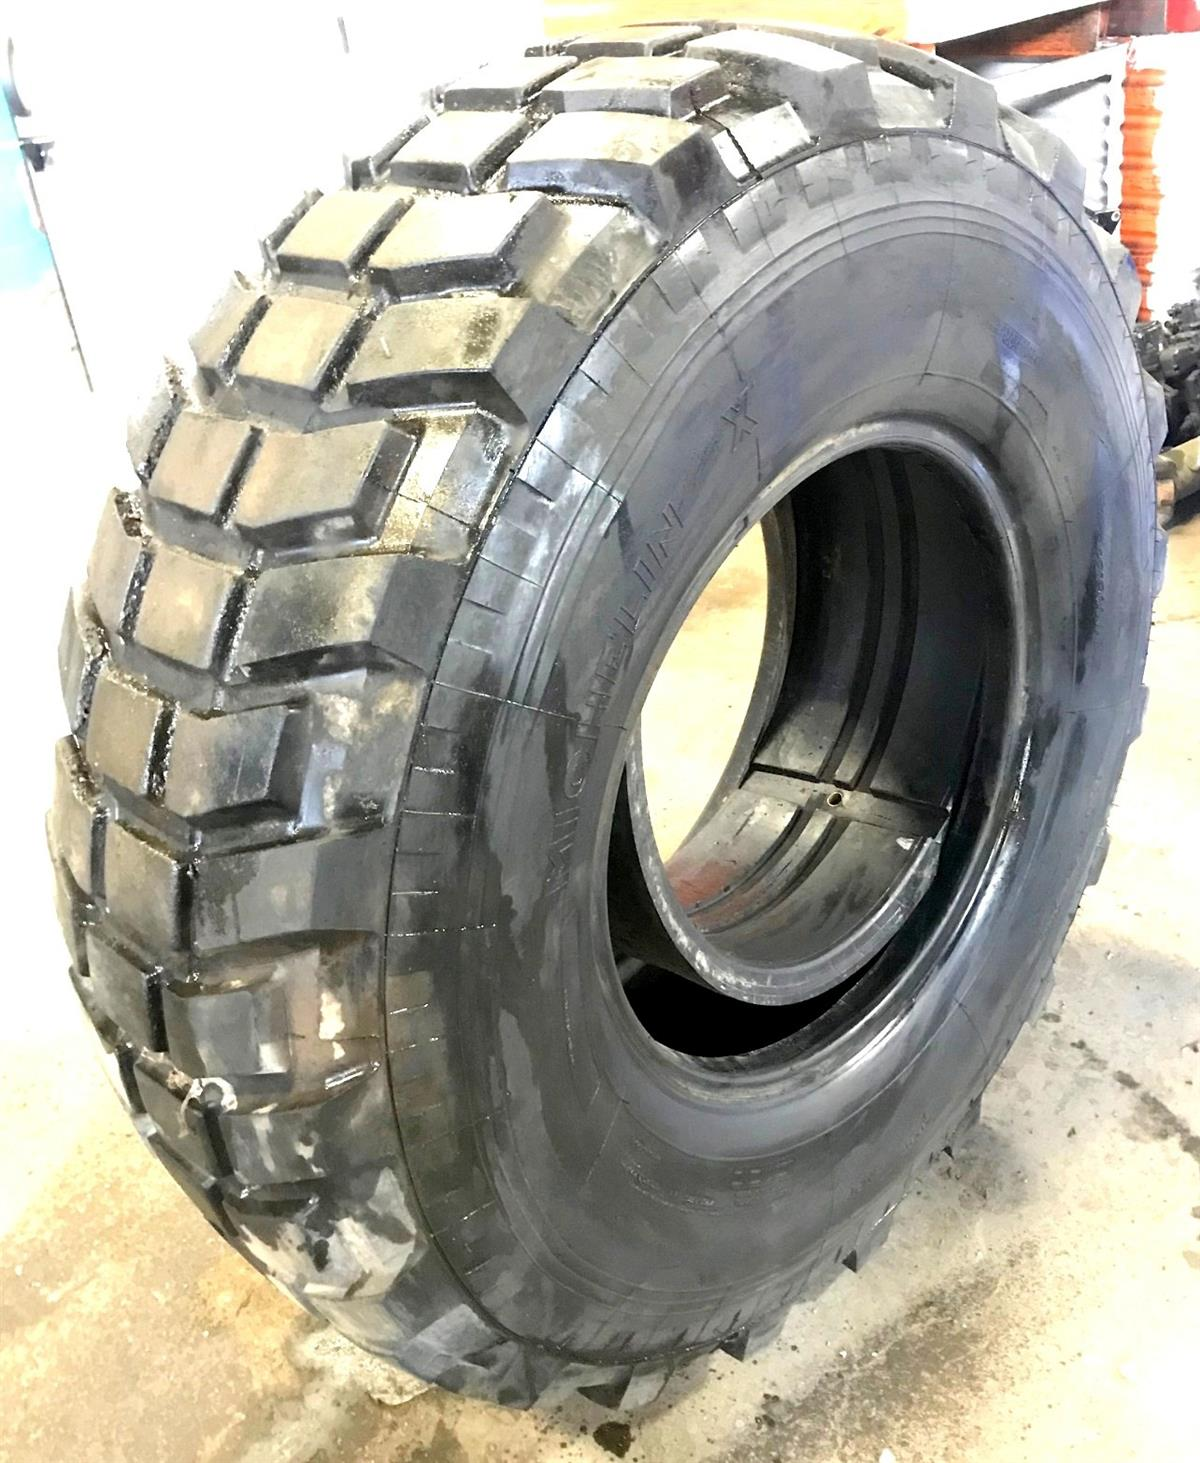 TI-451 | TI-451  Michelin X 14.5R20 Tire (Used)(5).jpg